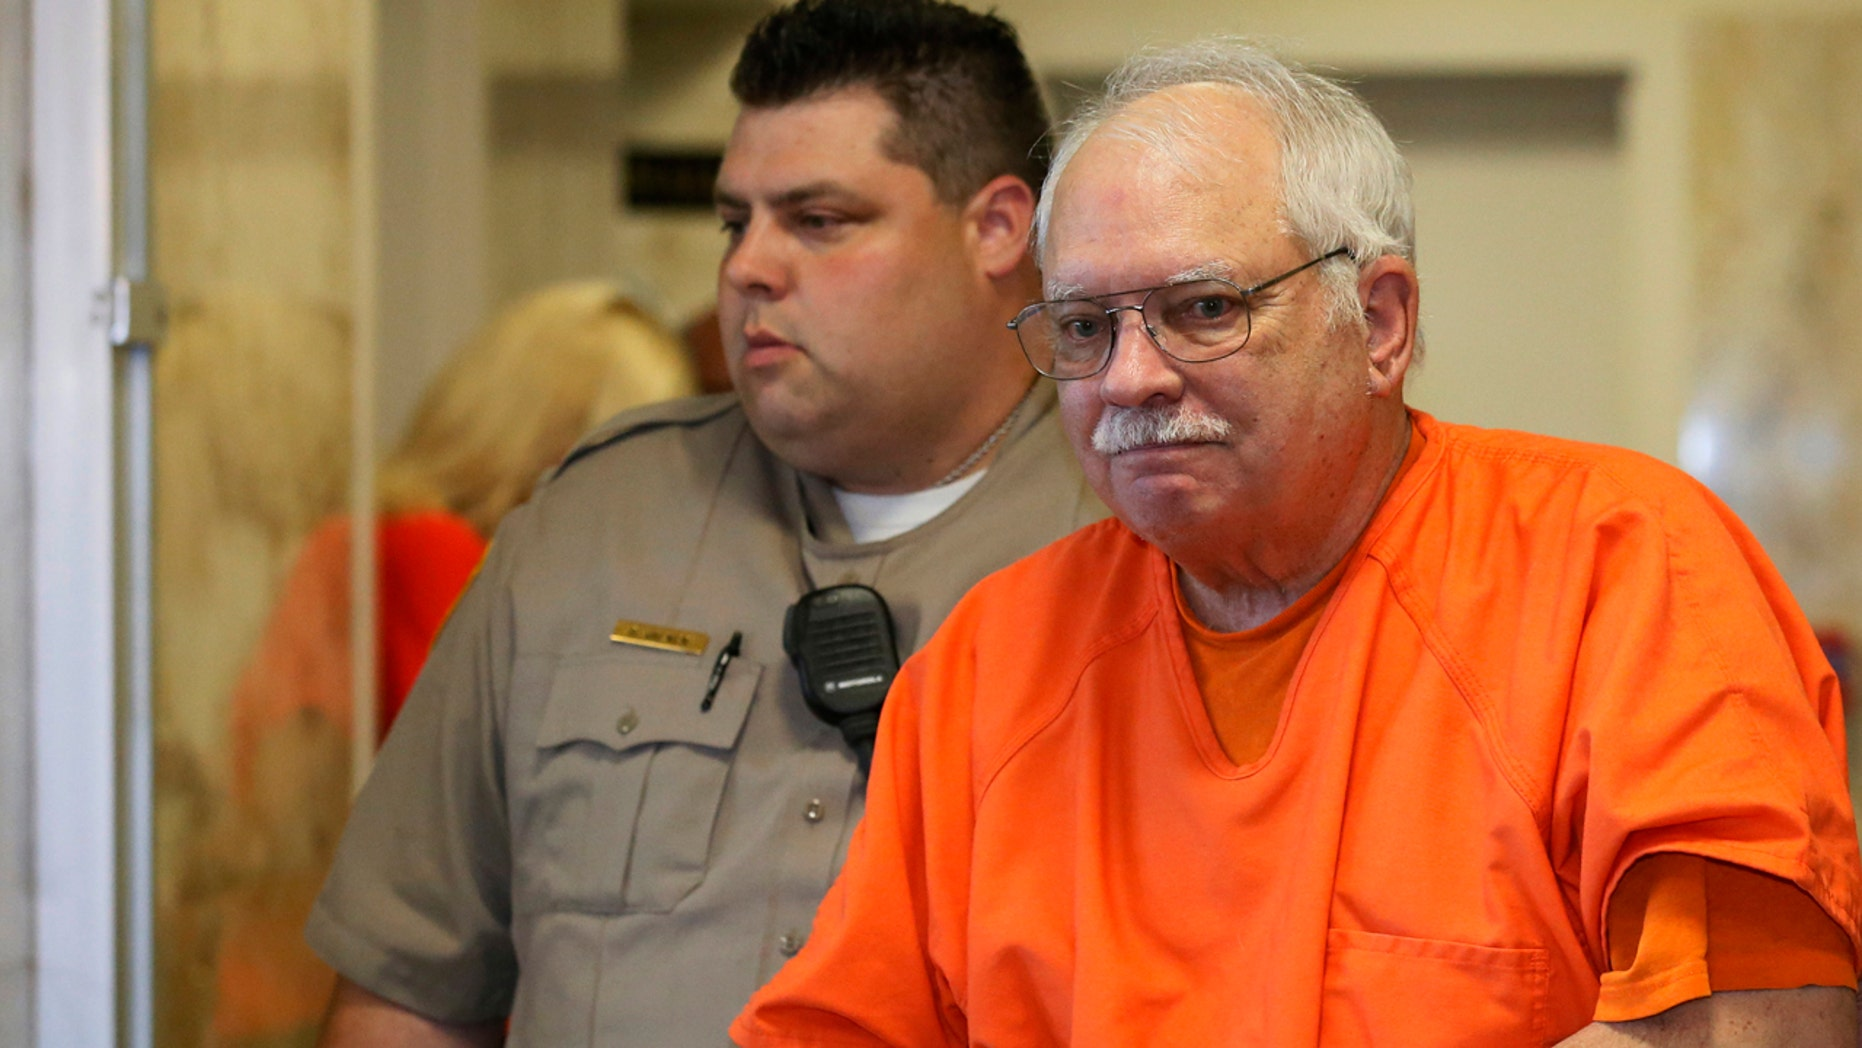 May 31, 2016: Robert Bates, a former Oklahoma volunteer sheriff's deputy who said he mistook his handgun for his stun gun when he fatally shot an unarmed suspect in 2015, is escorted from the courtroom following his sentencing at the courthouse in Tulsa.